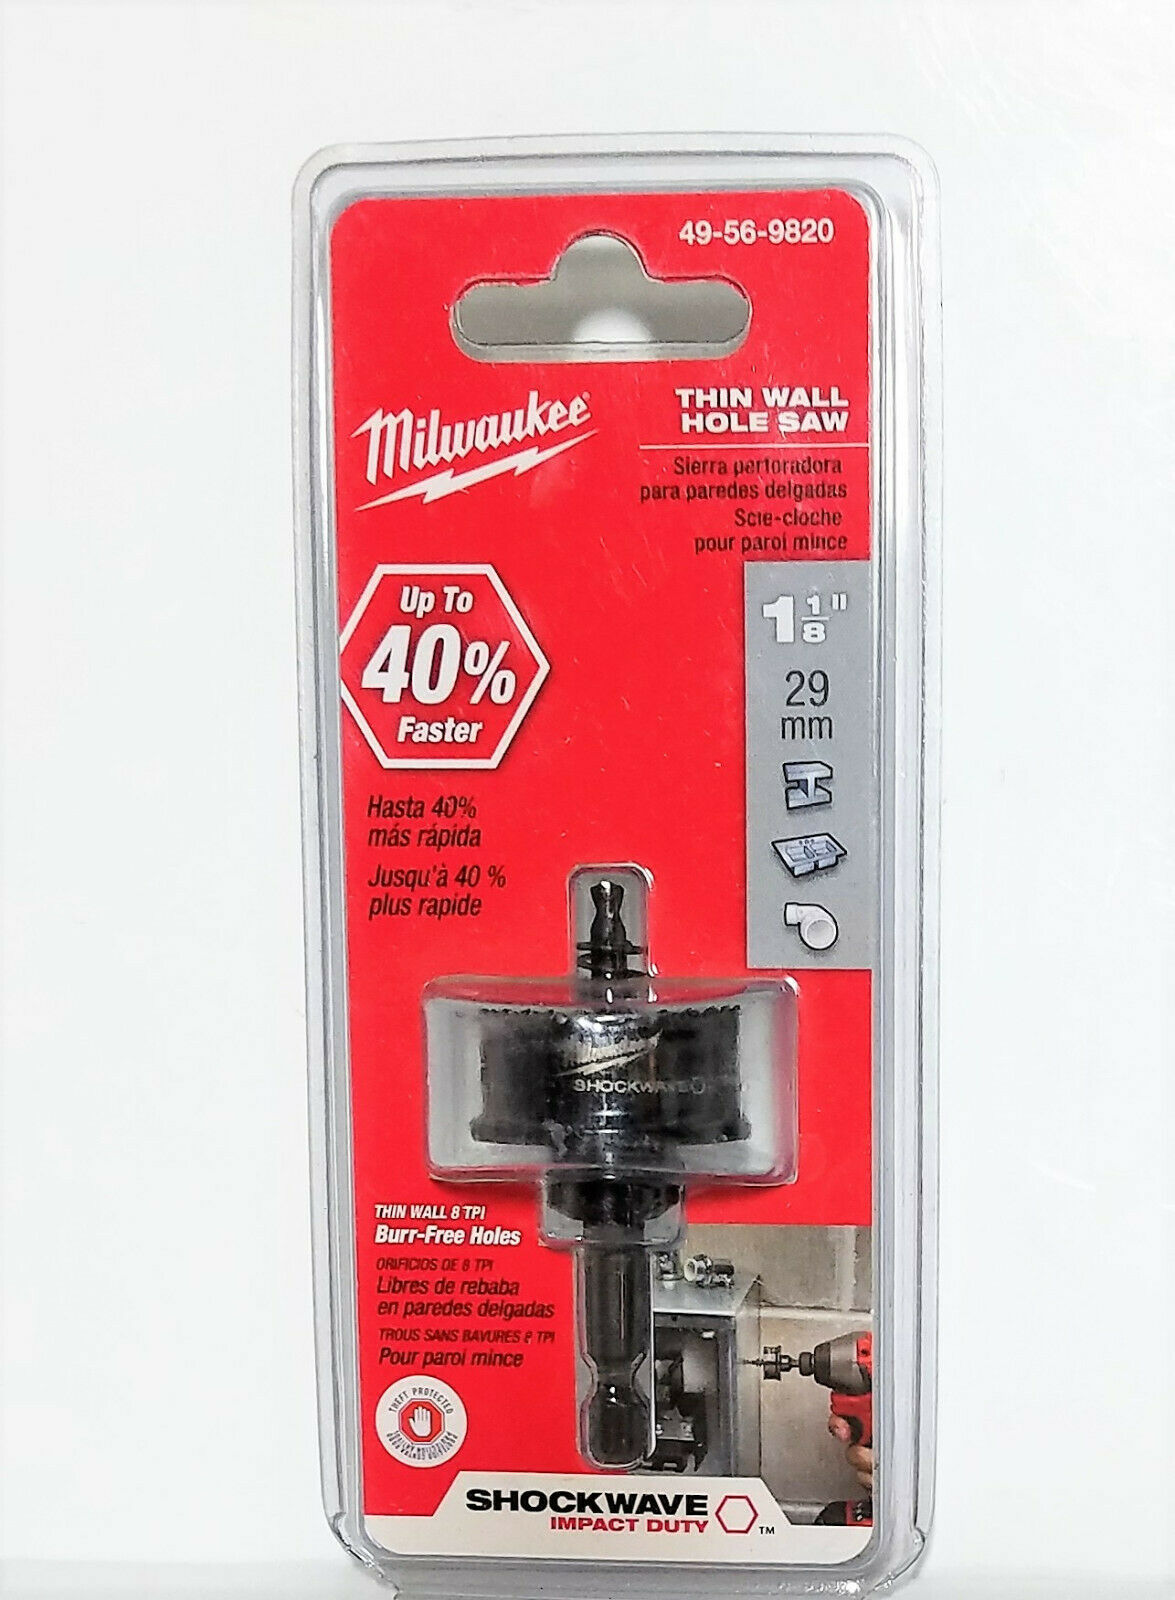 Primary image for Milwaukee 49-56-9820 1-1/8 in. Thin Wall Shockwave Hole Saw